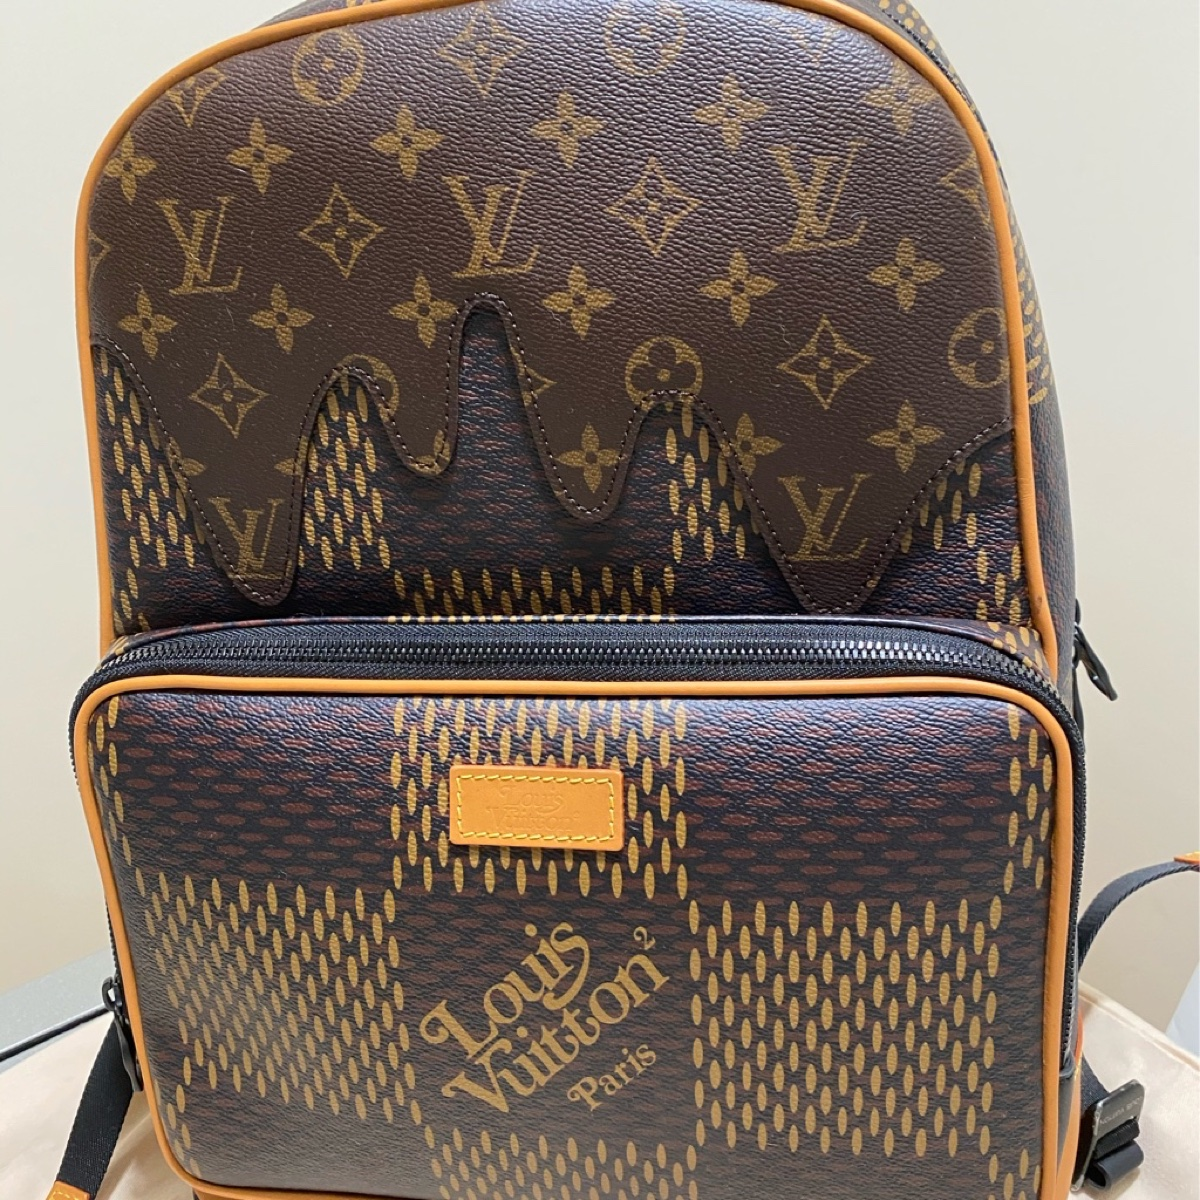 LV x Nigo 🦆 Louis Vuitton Campus Backpack